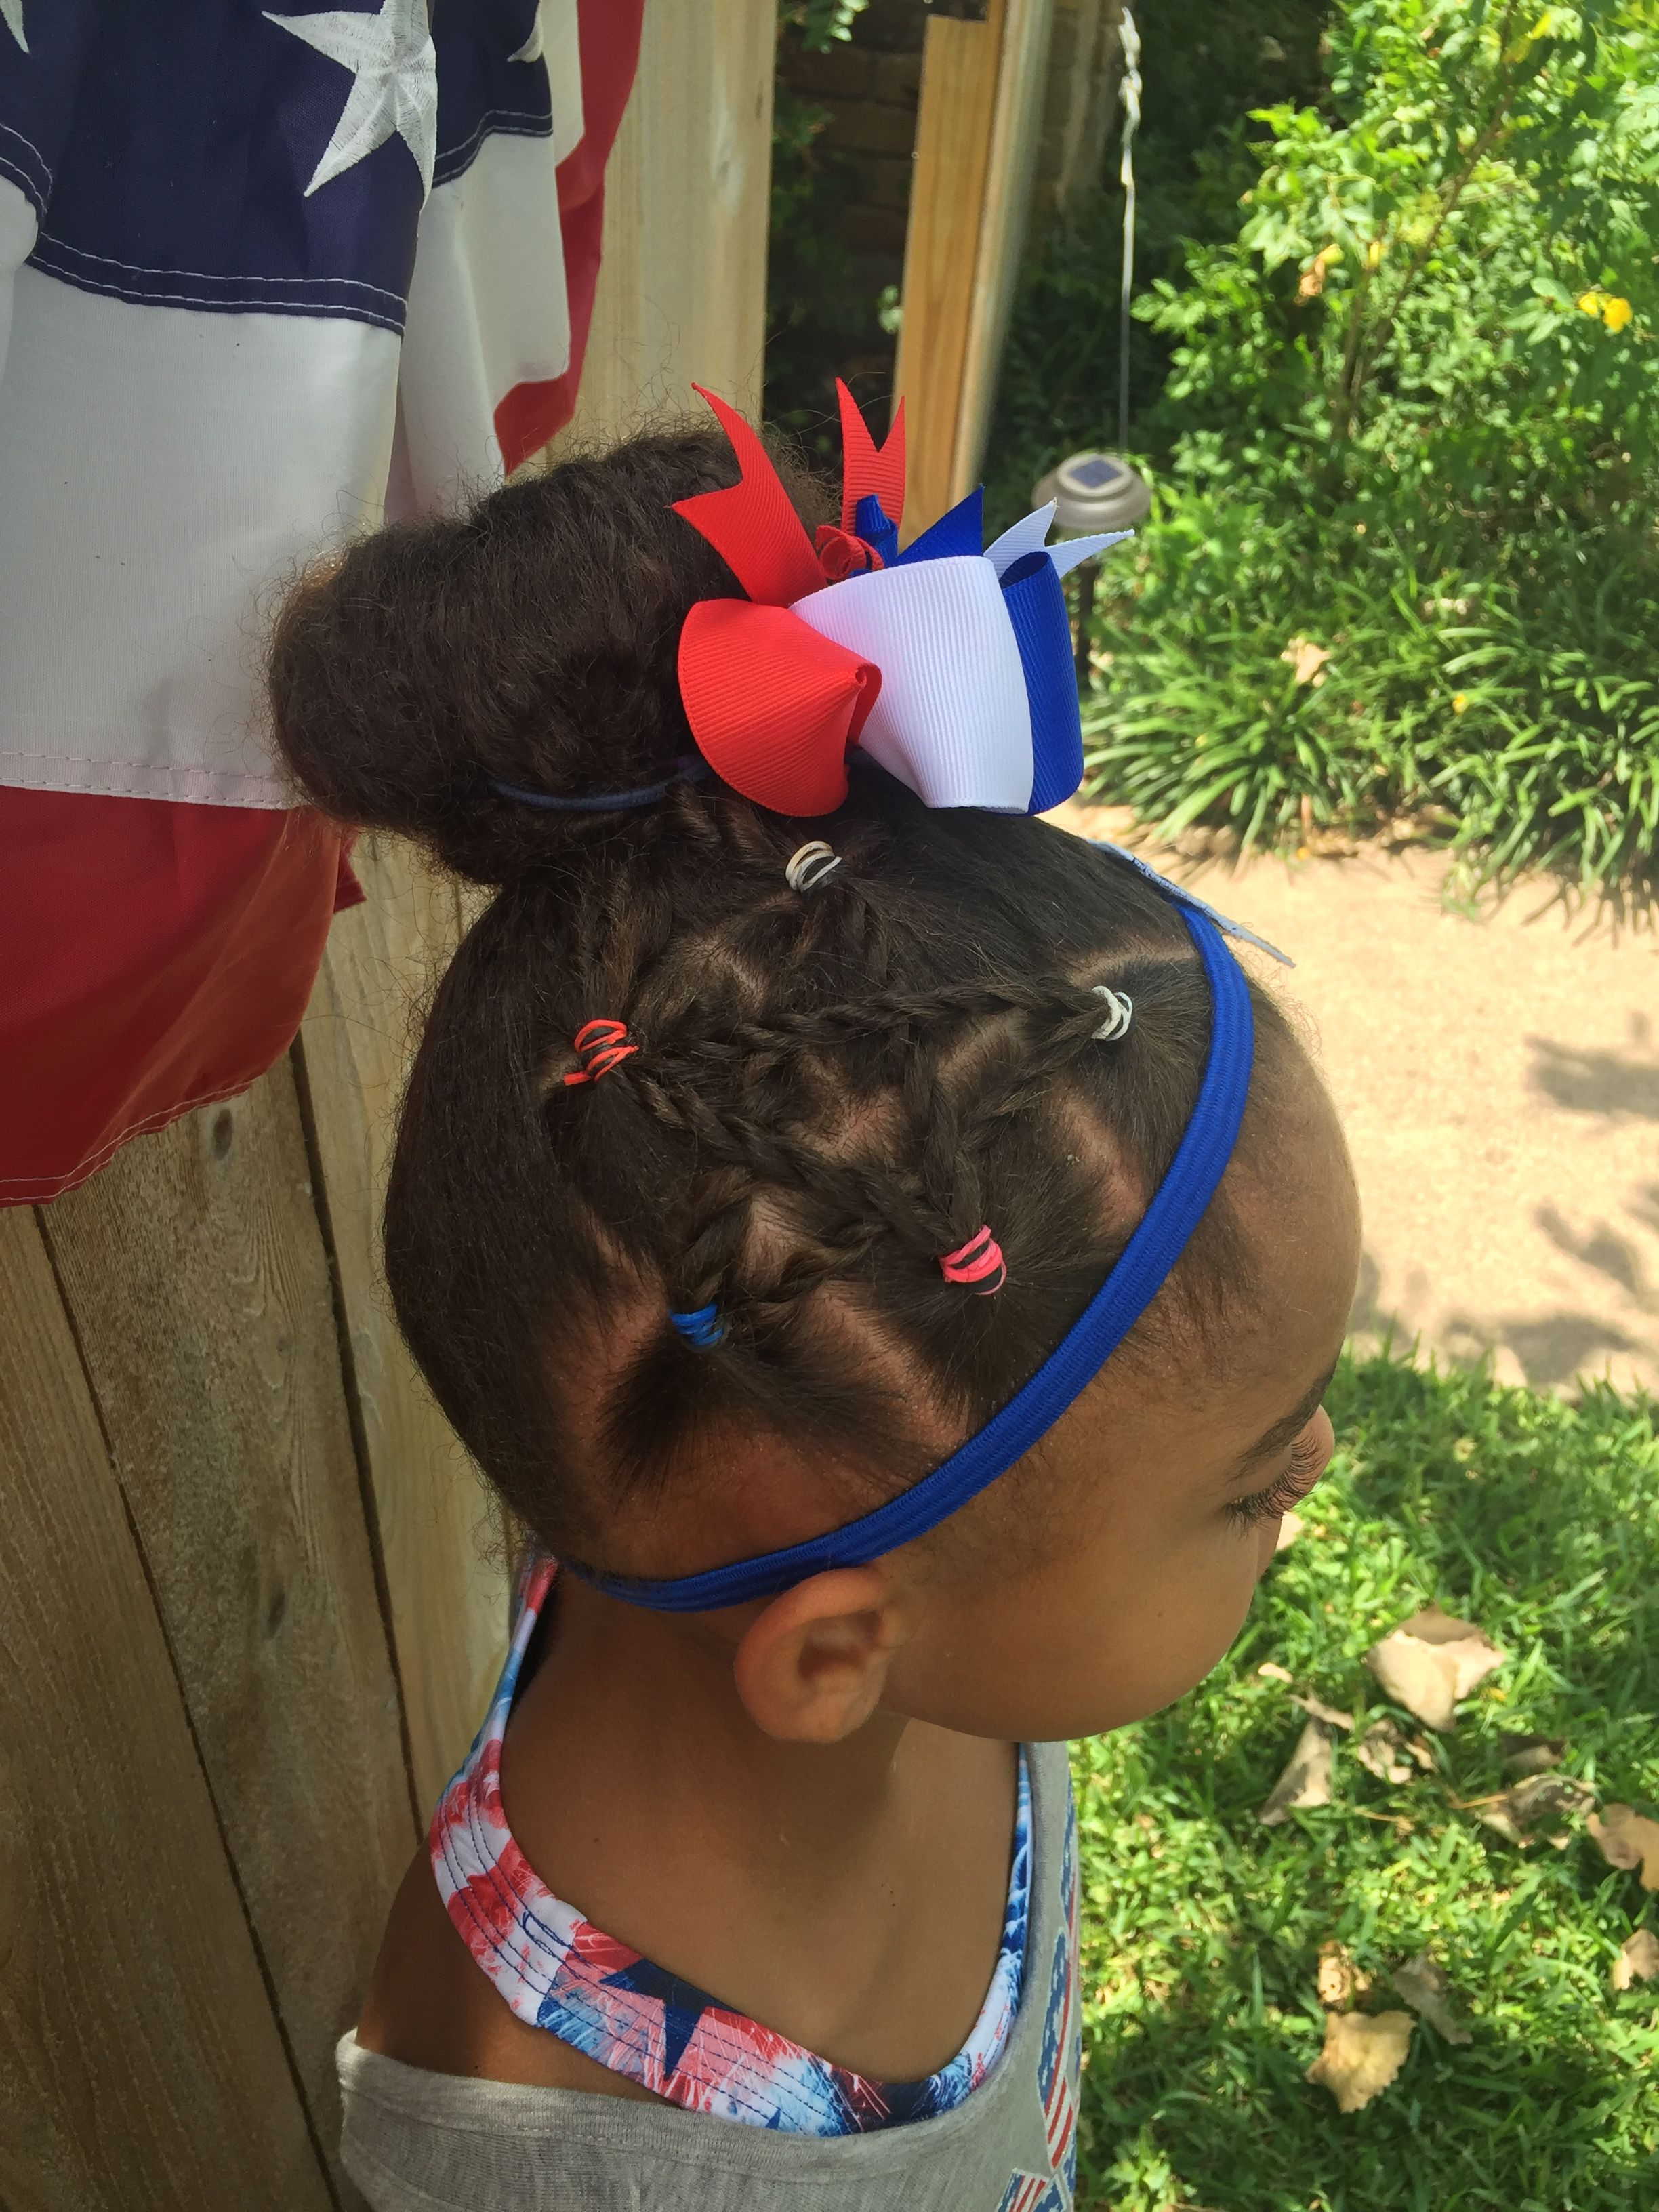 Kids Hairstyles Mixed Girl Hair 4th Of July Hair Mixed Girl Hairstyles Kids Hairstyles Girl Hairstyles